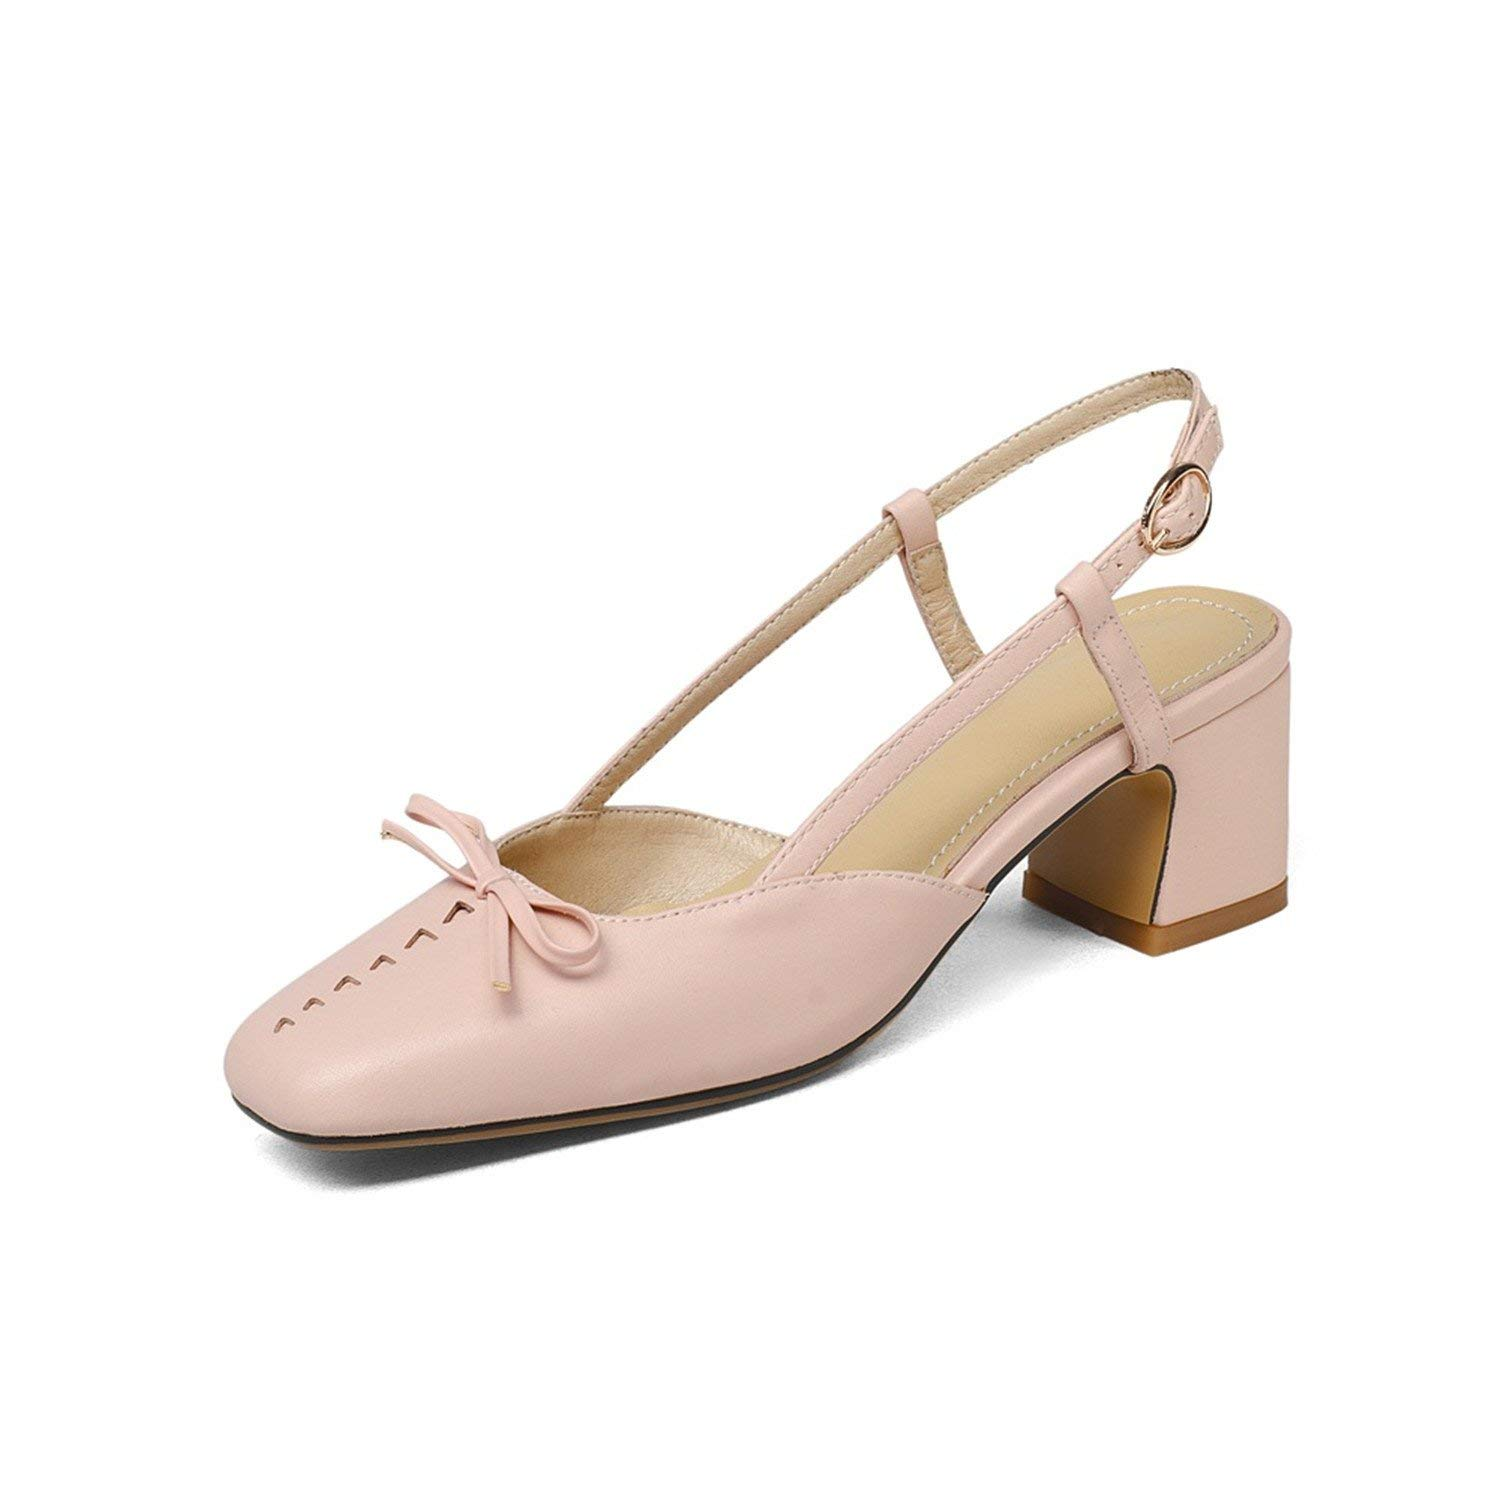 Cheap Nude Shoes Sale, find Nude Shoes